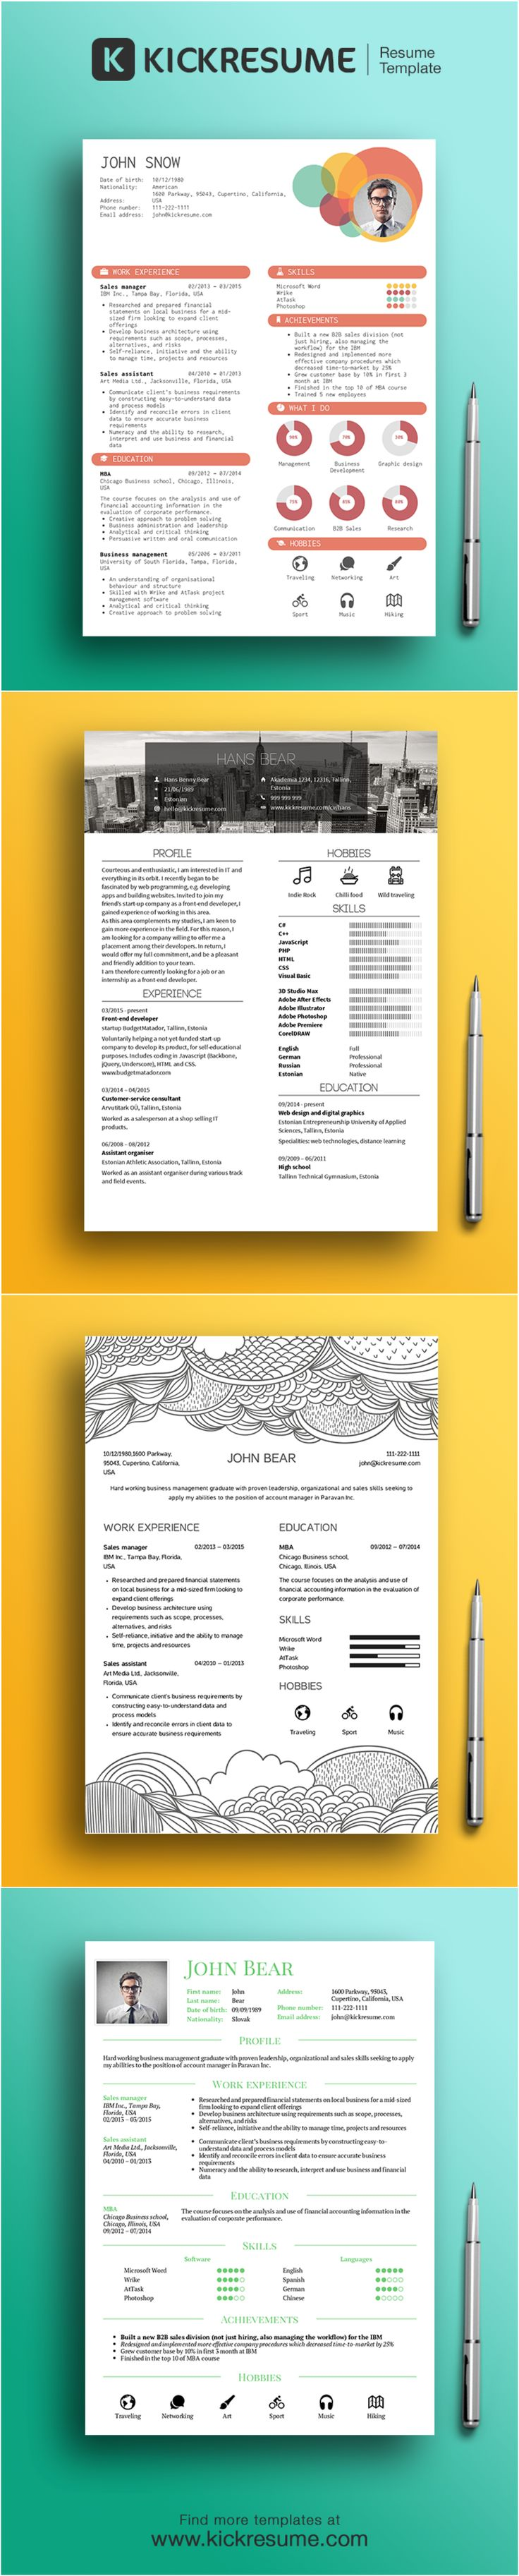 Example Of Graphic Design Resume Glamorous 80 Best Resume Design Images On Pinterest  Resume Gym And Productivity